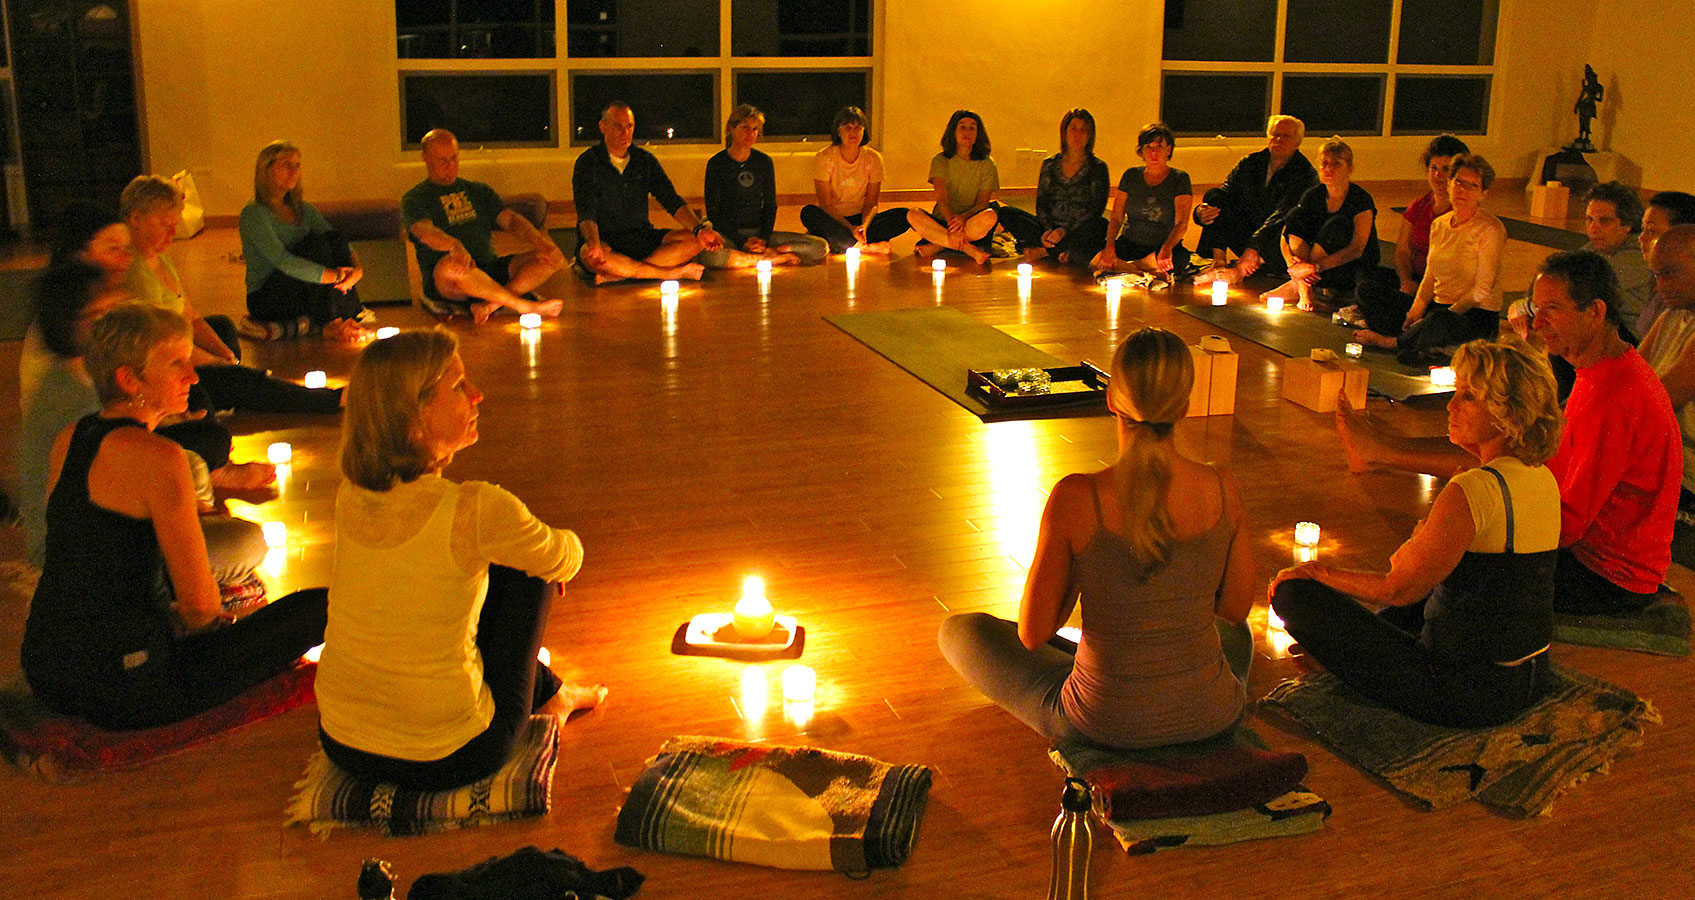 Candlelight Ceremony - Yoga Retreat - Mexico